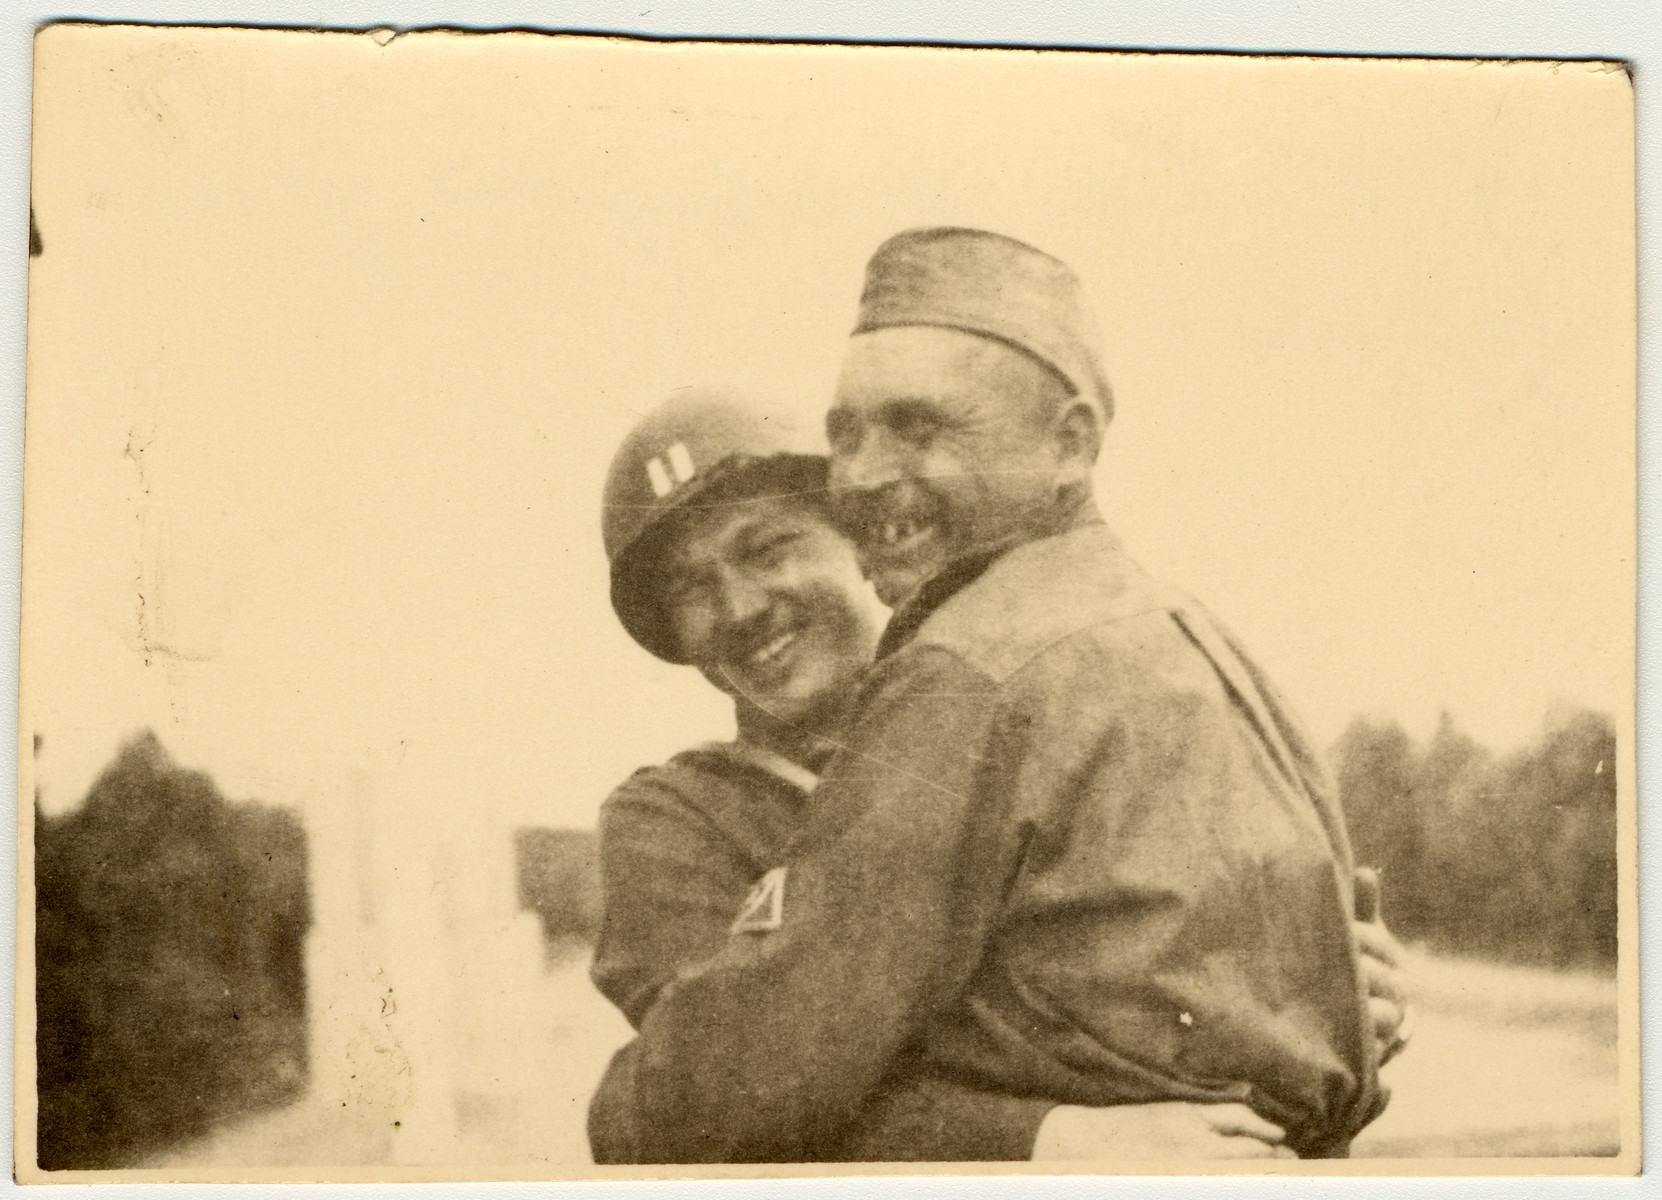 American and Russian soldiers share a hug for the camera.